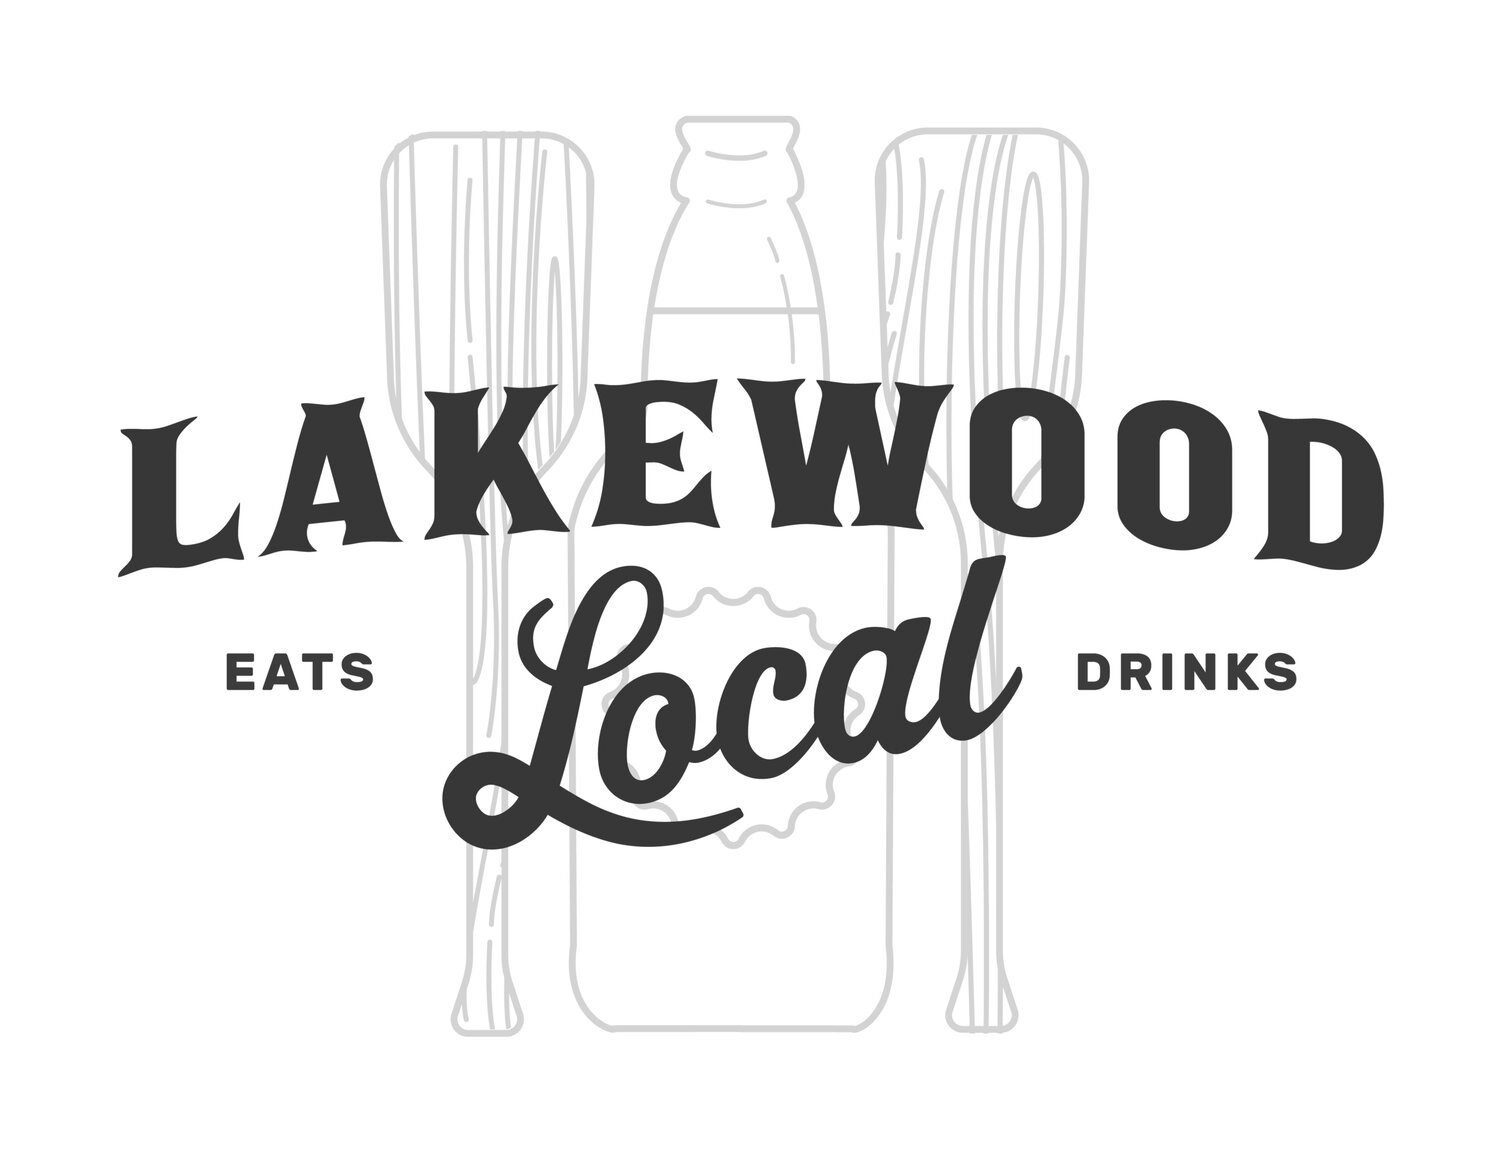 Lakewood Local